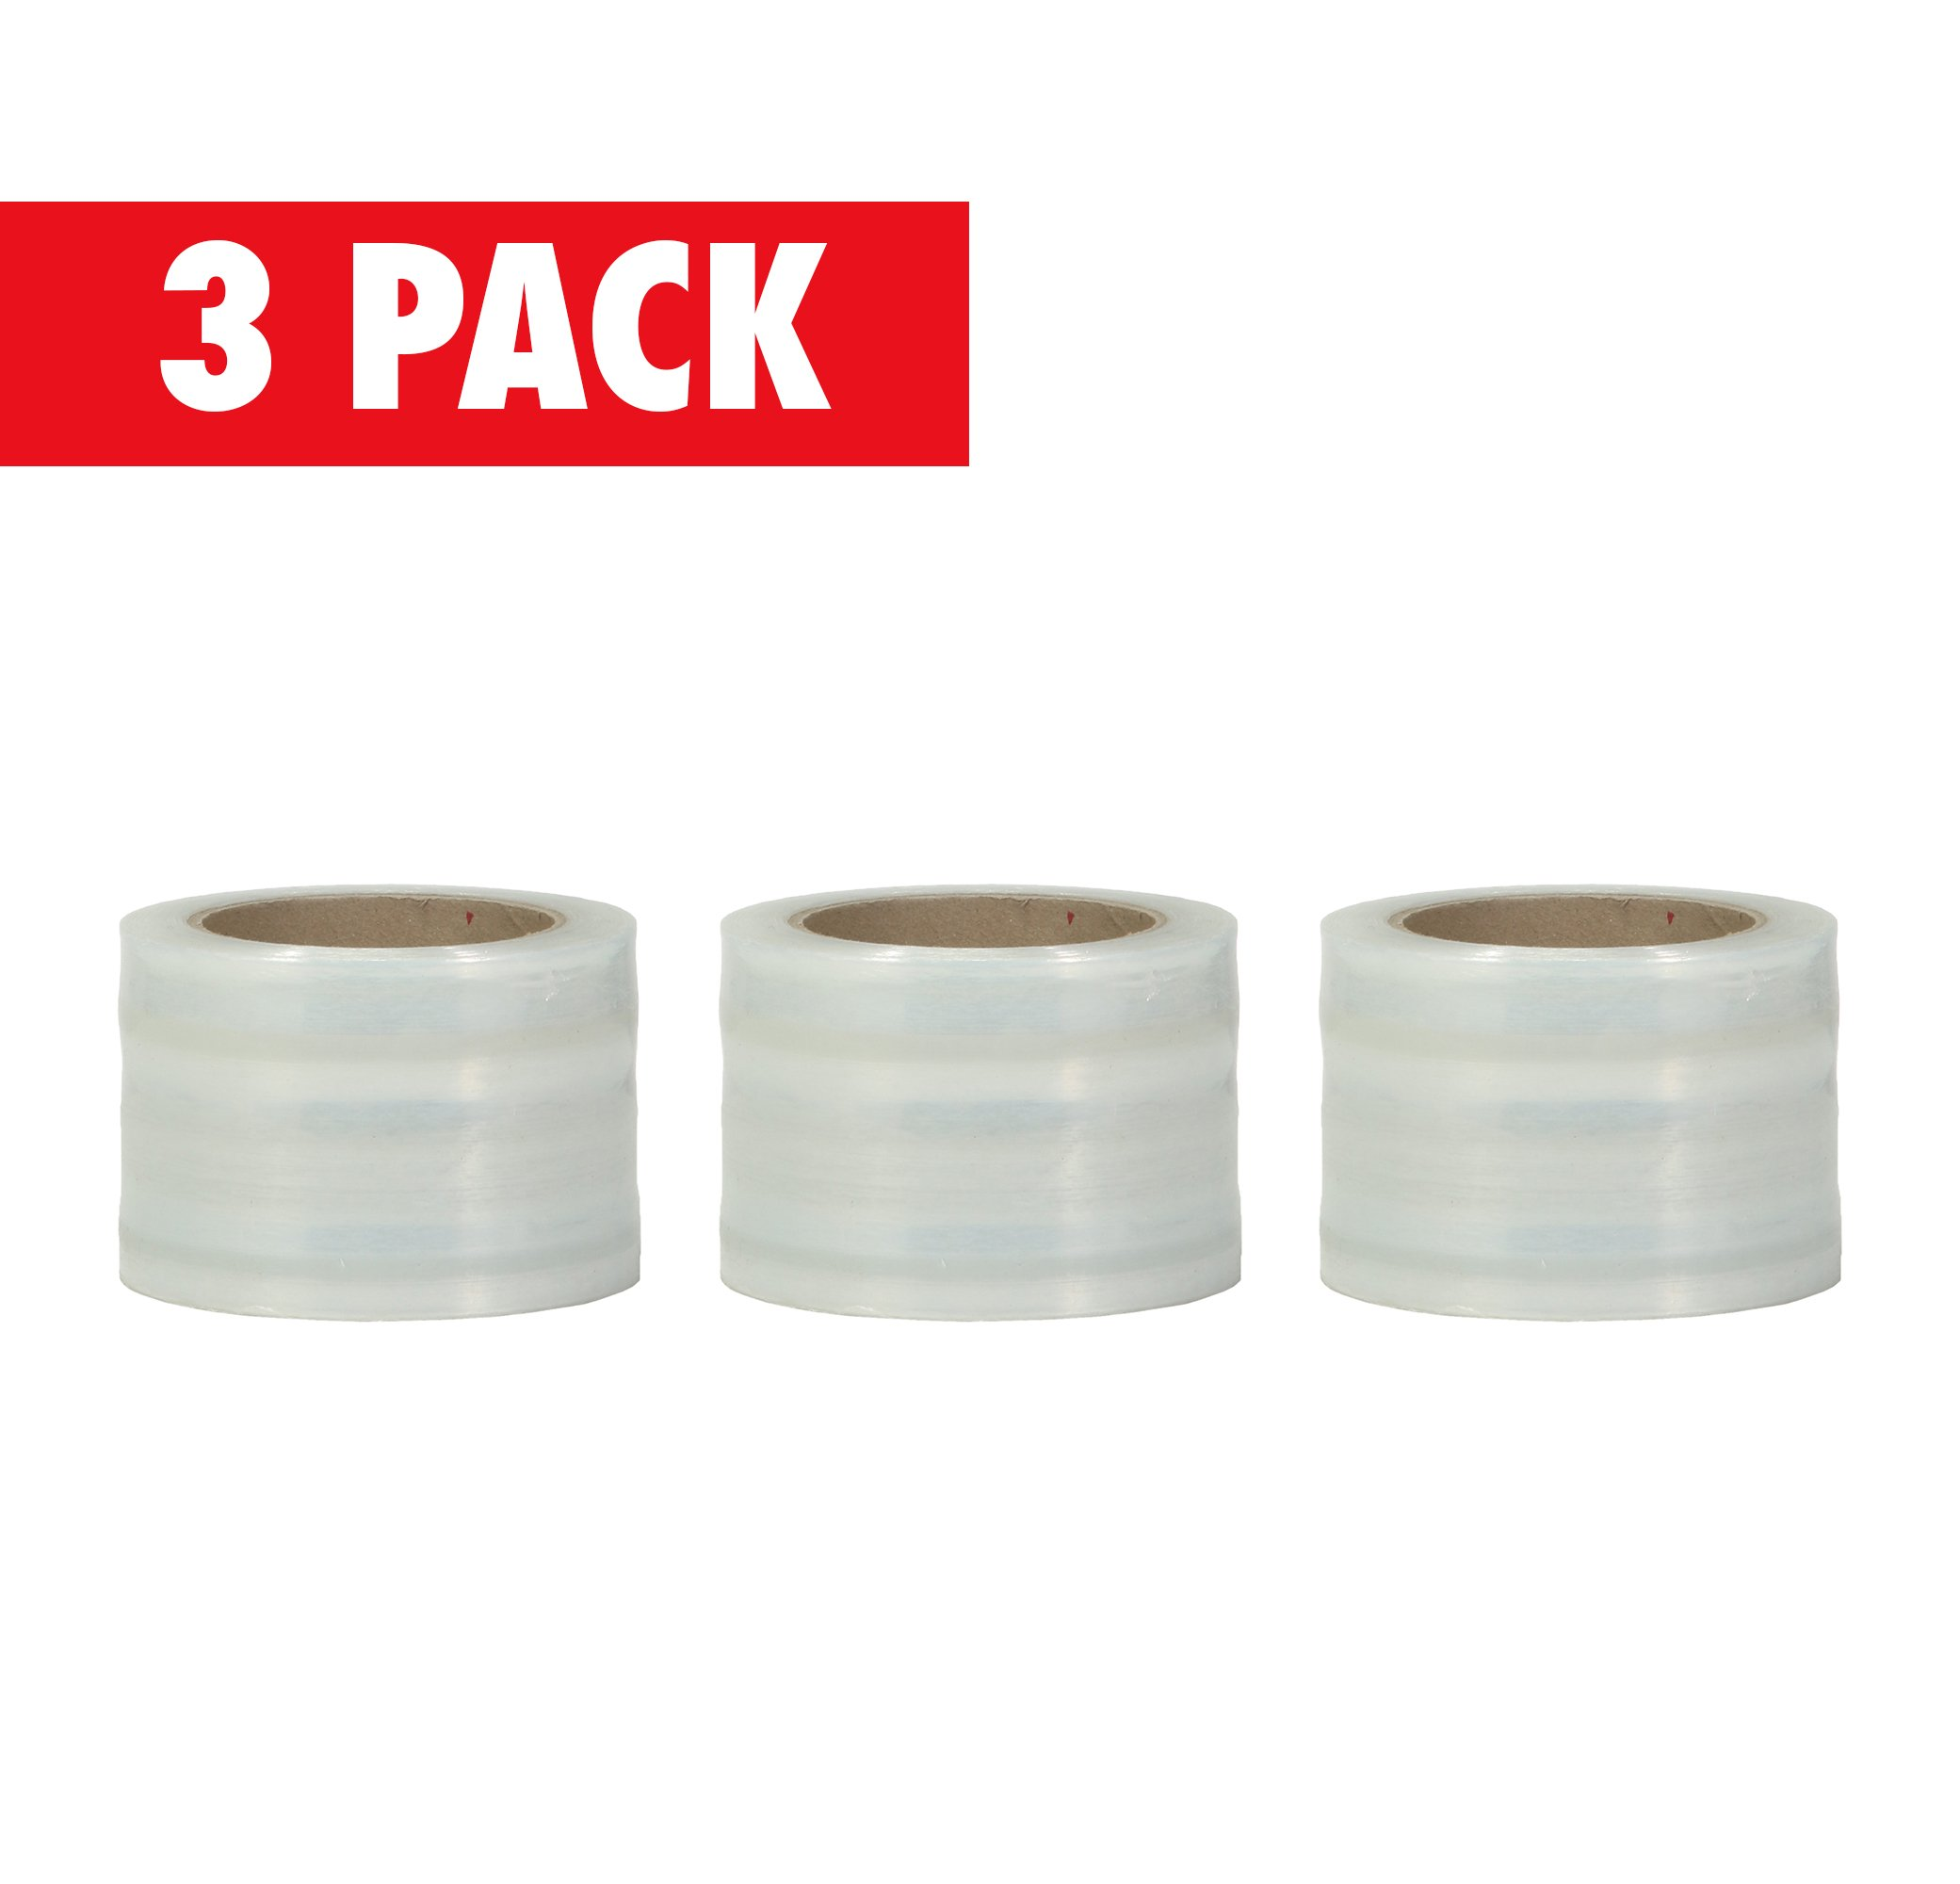 Plastic Stretch Pallet Wrap Core, 3 Inches X 1000 Feet, 80 Gauge, Clear Shrink Stretch Film Roll, Furniture, Boxes, Pallets, Industrial Strength, Made in USA (3-Pack)